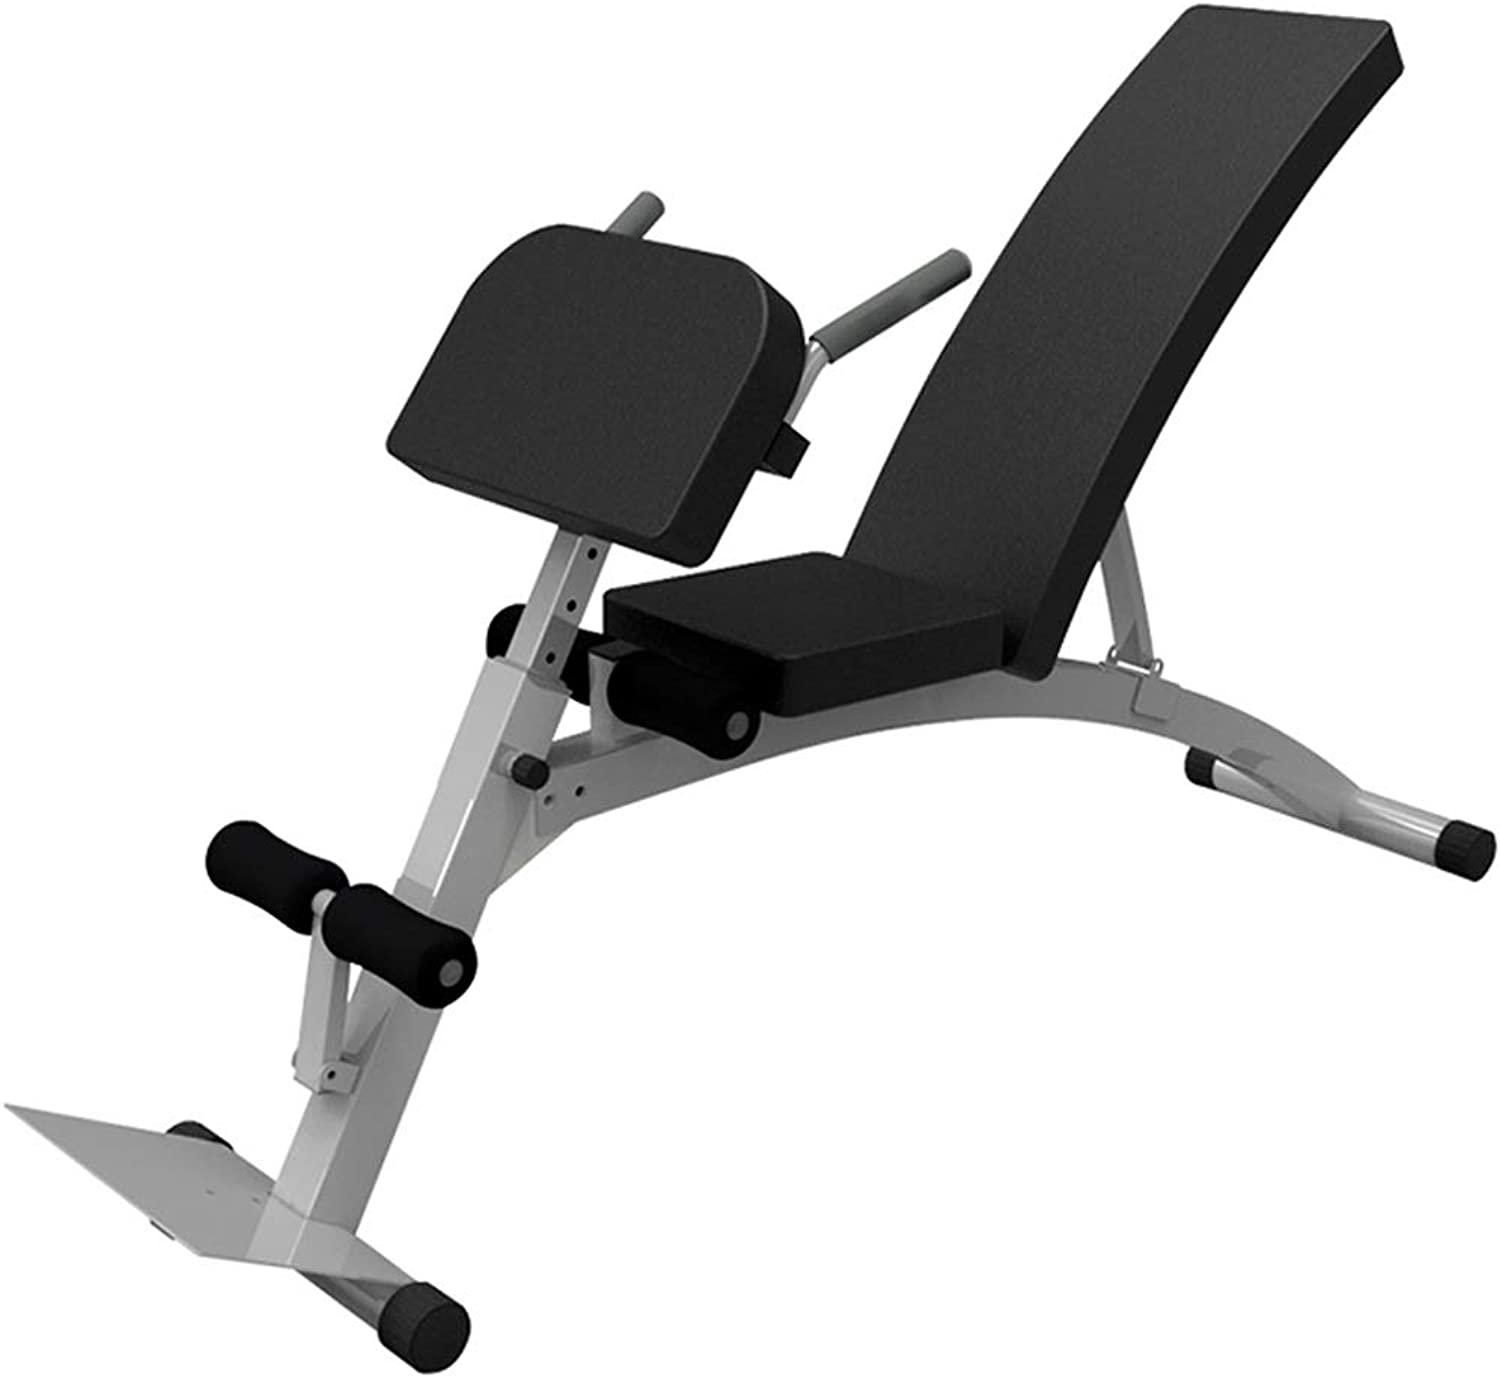 Dumbbell Bench Sports Fitness Chair, Fitness Equipment Situps Fitness Chair Pastor Stool MultiFunctional Abdominal Fitness Equipment Strong LoadBearing Capacity